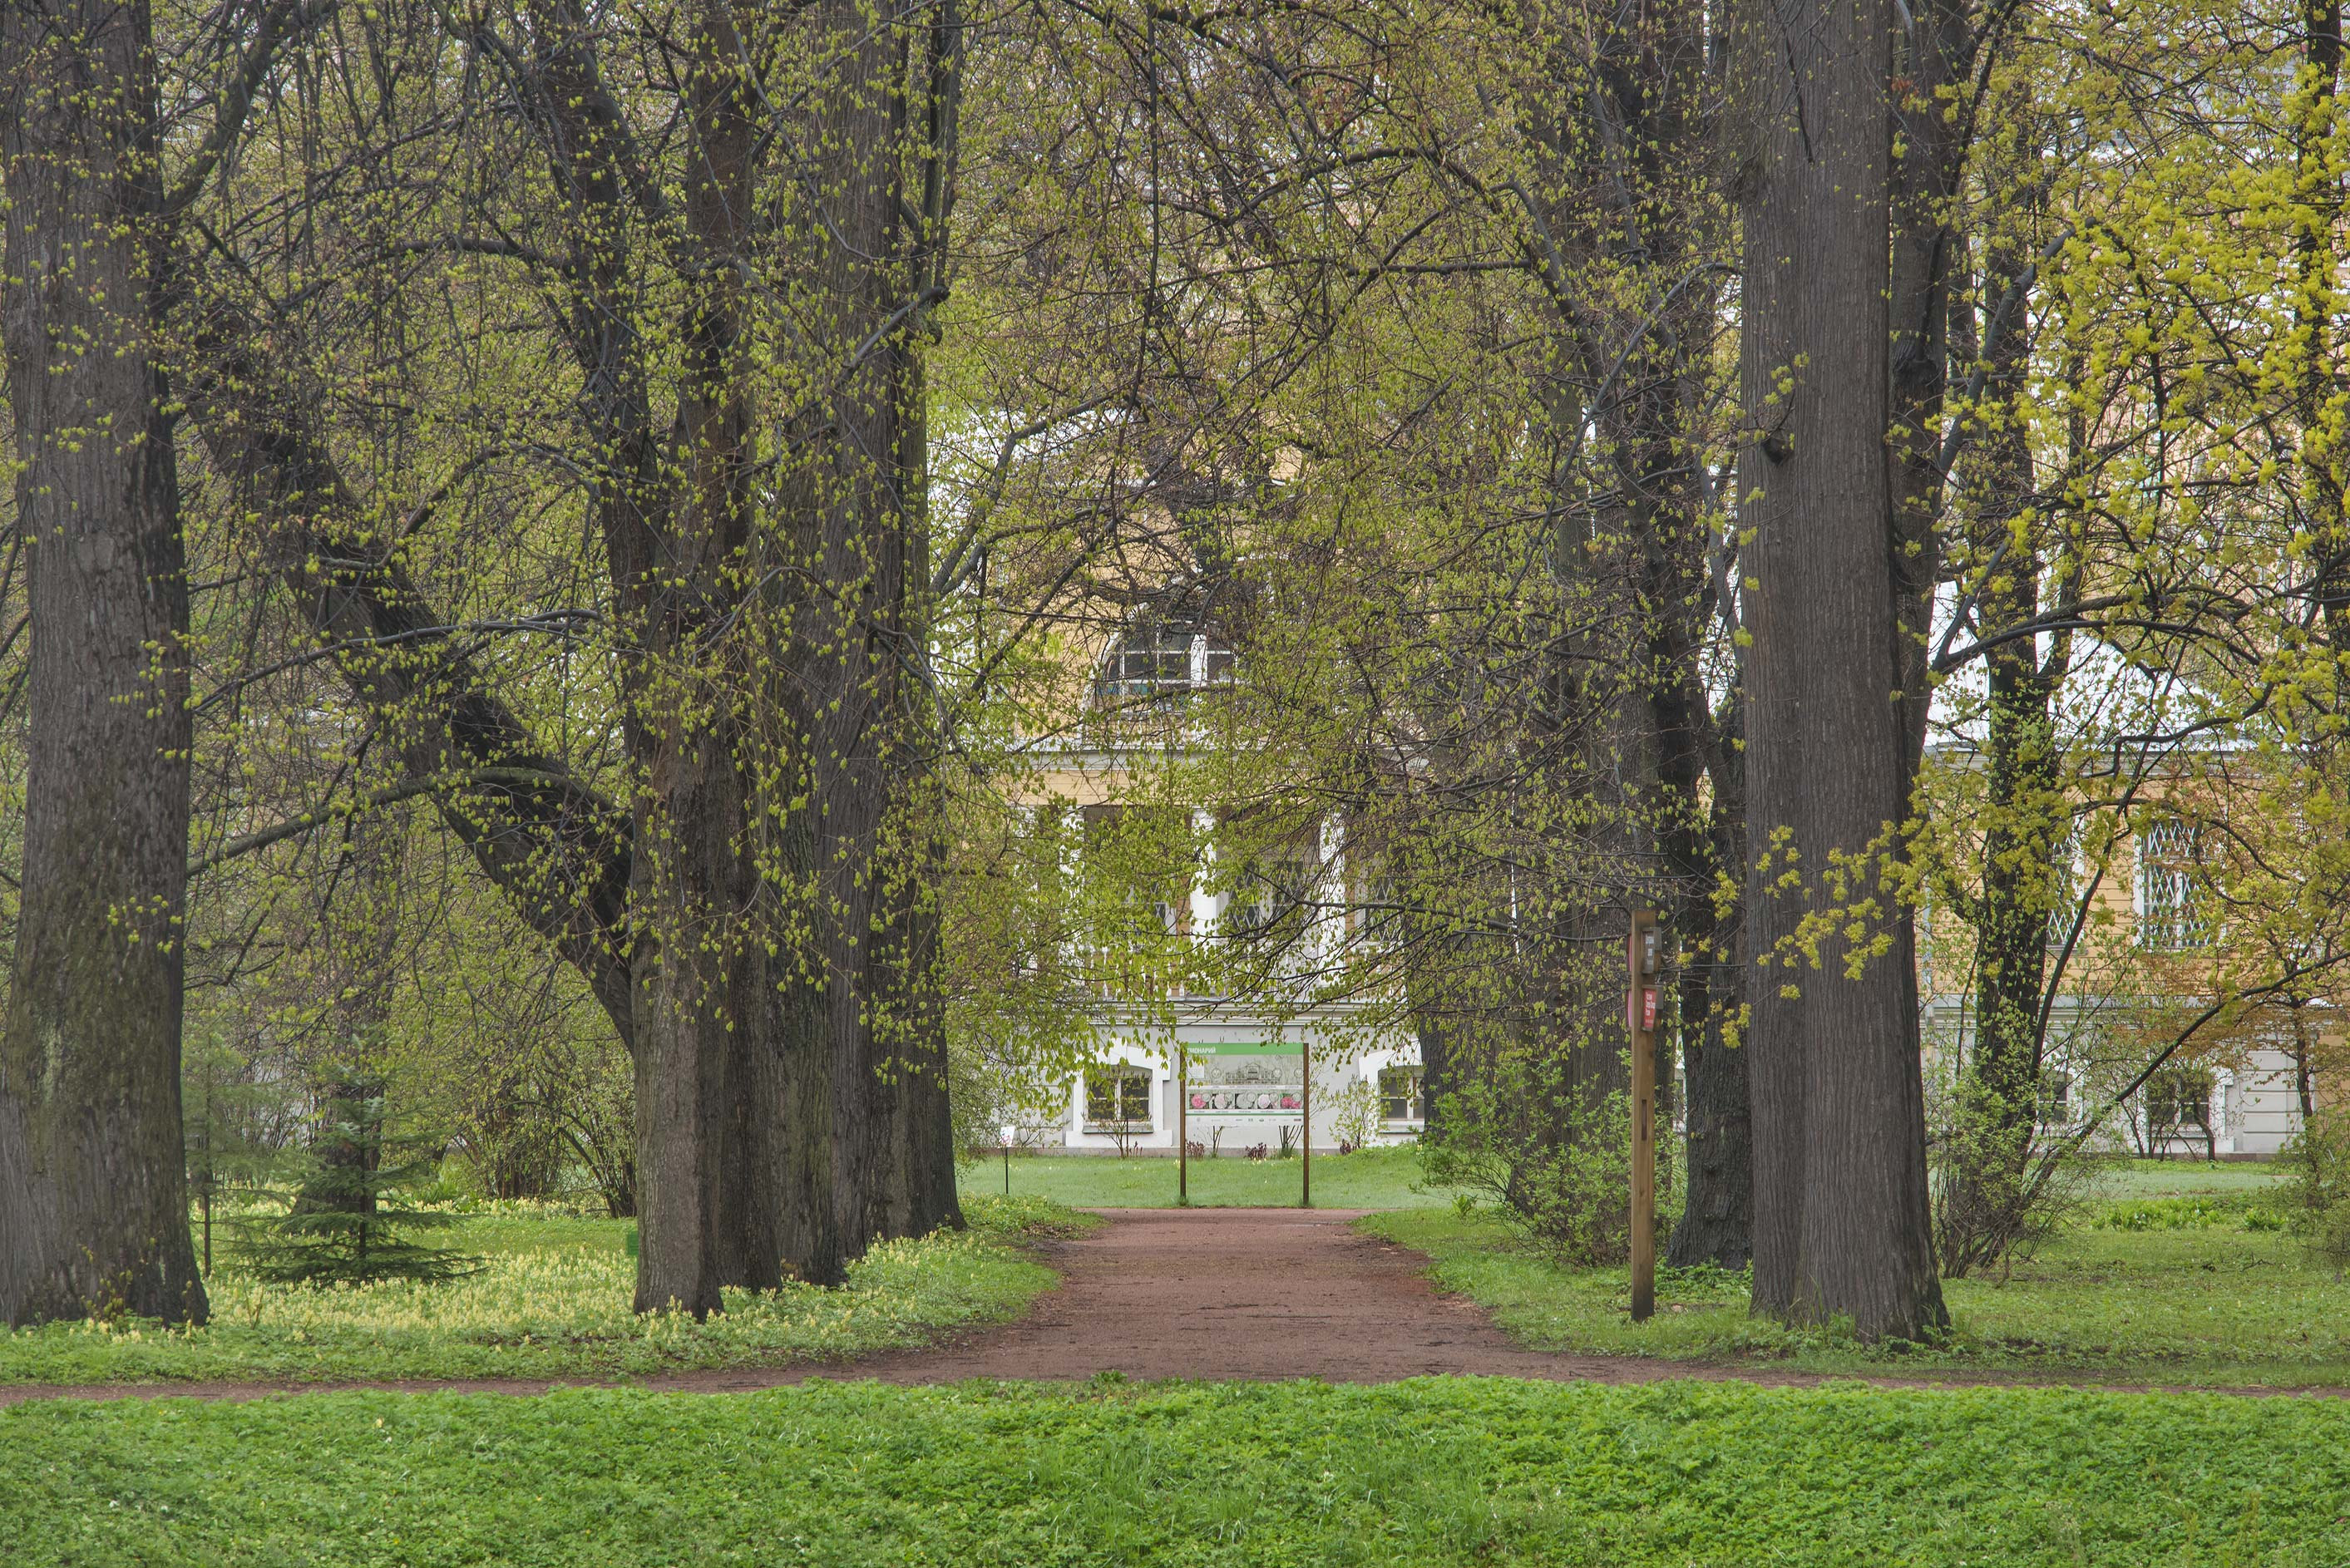 Tree alley in Peter the Great Botanical Garden of...Institute. St.Petersburg, Russia